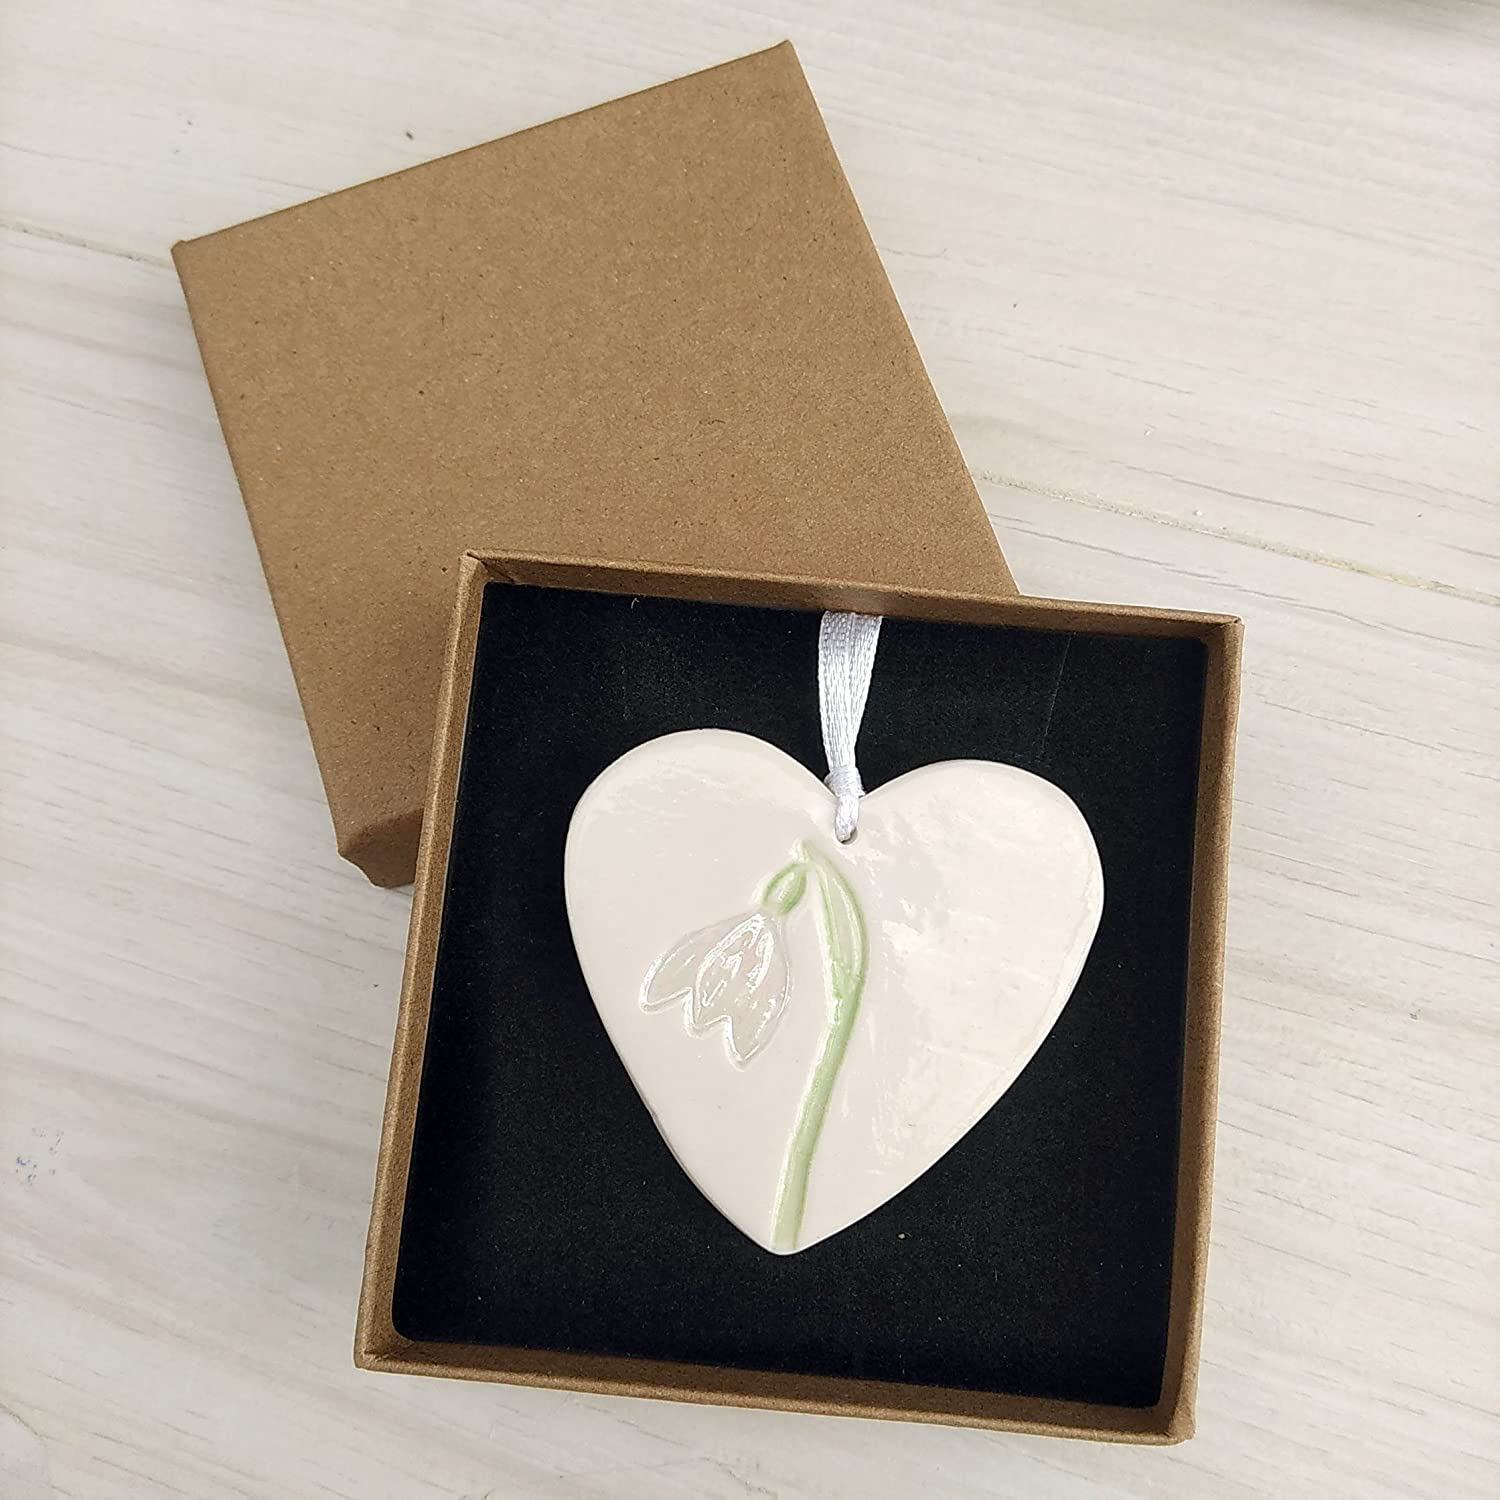 Snowdrop gifts - Ceramic Heart Hanging Decorations - Thank you Gift for Mum